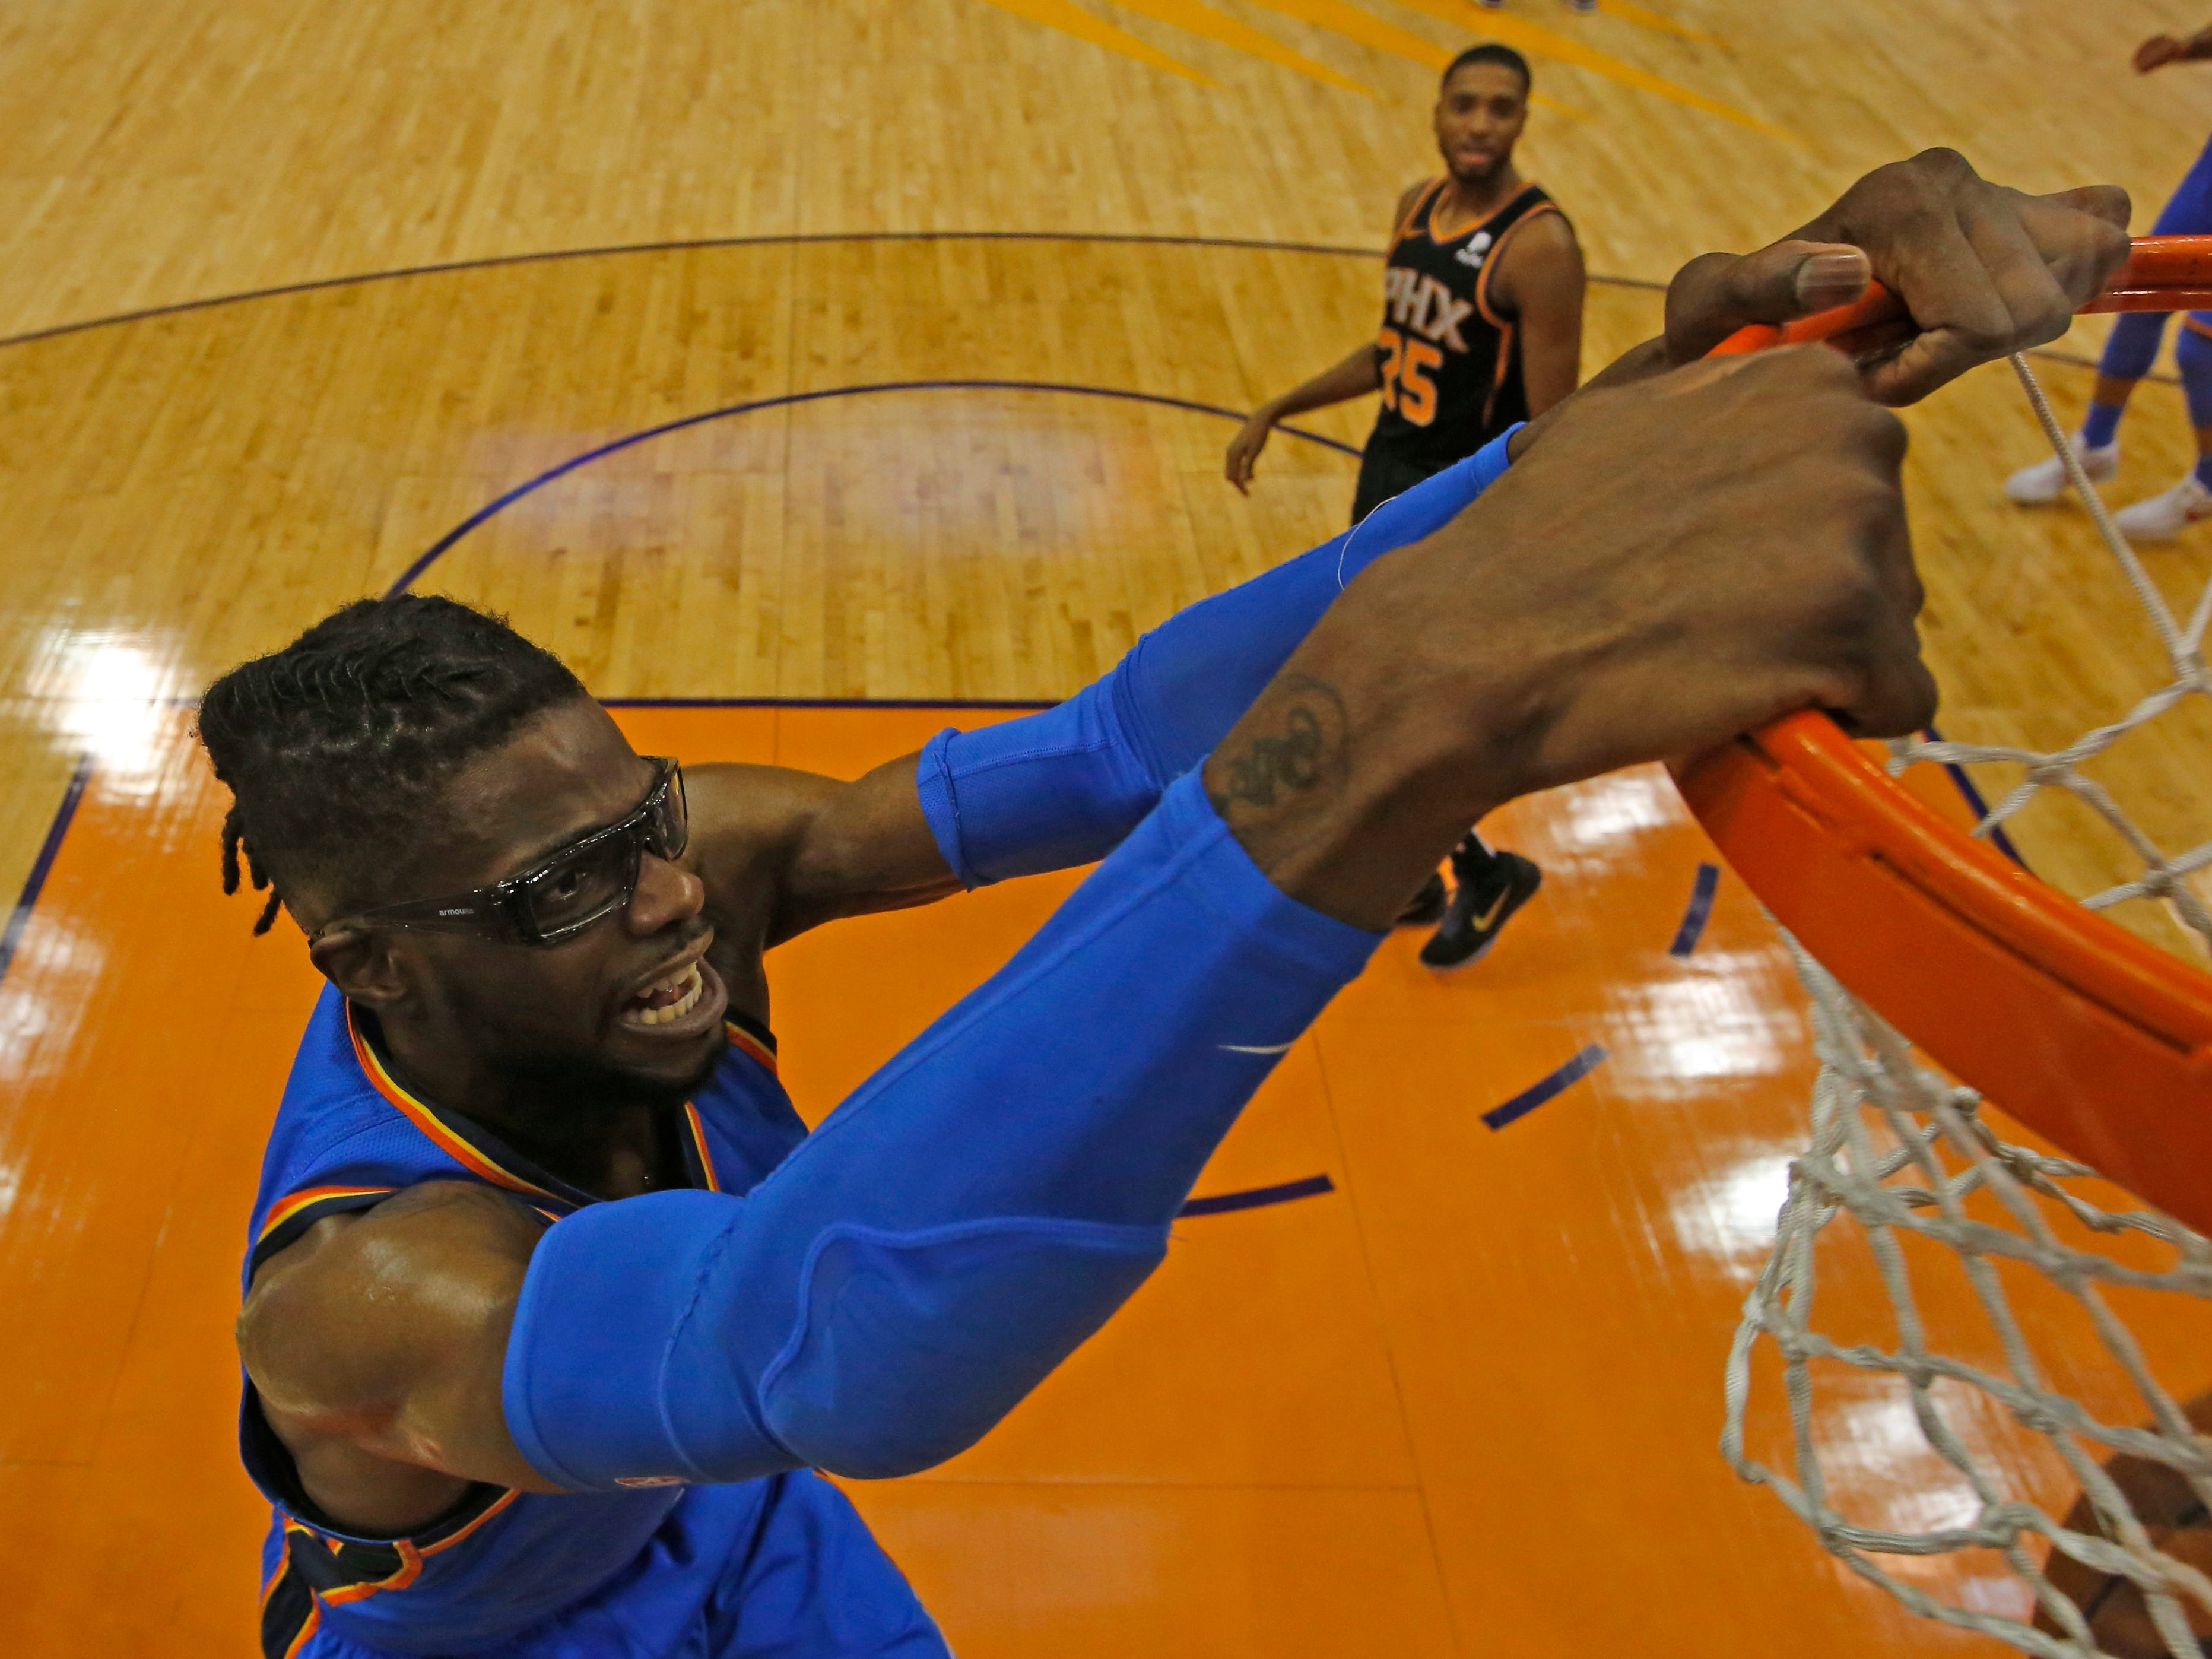 Oklahoma City Thunder forward Nerlens Noel (3) in the first half during an NBA basketball game against the Phoenix Suns, Saturday, Nov. 17, 2018, in Phoenix. (AP Photo/Rick Scuteri)